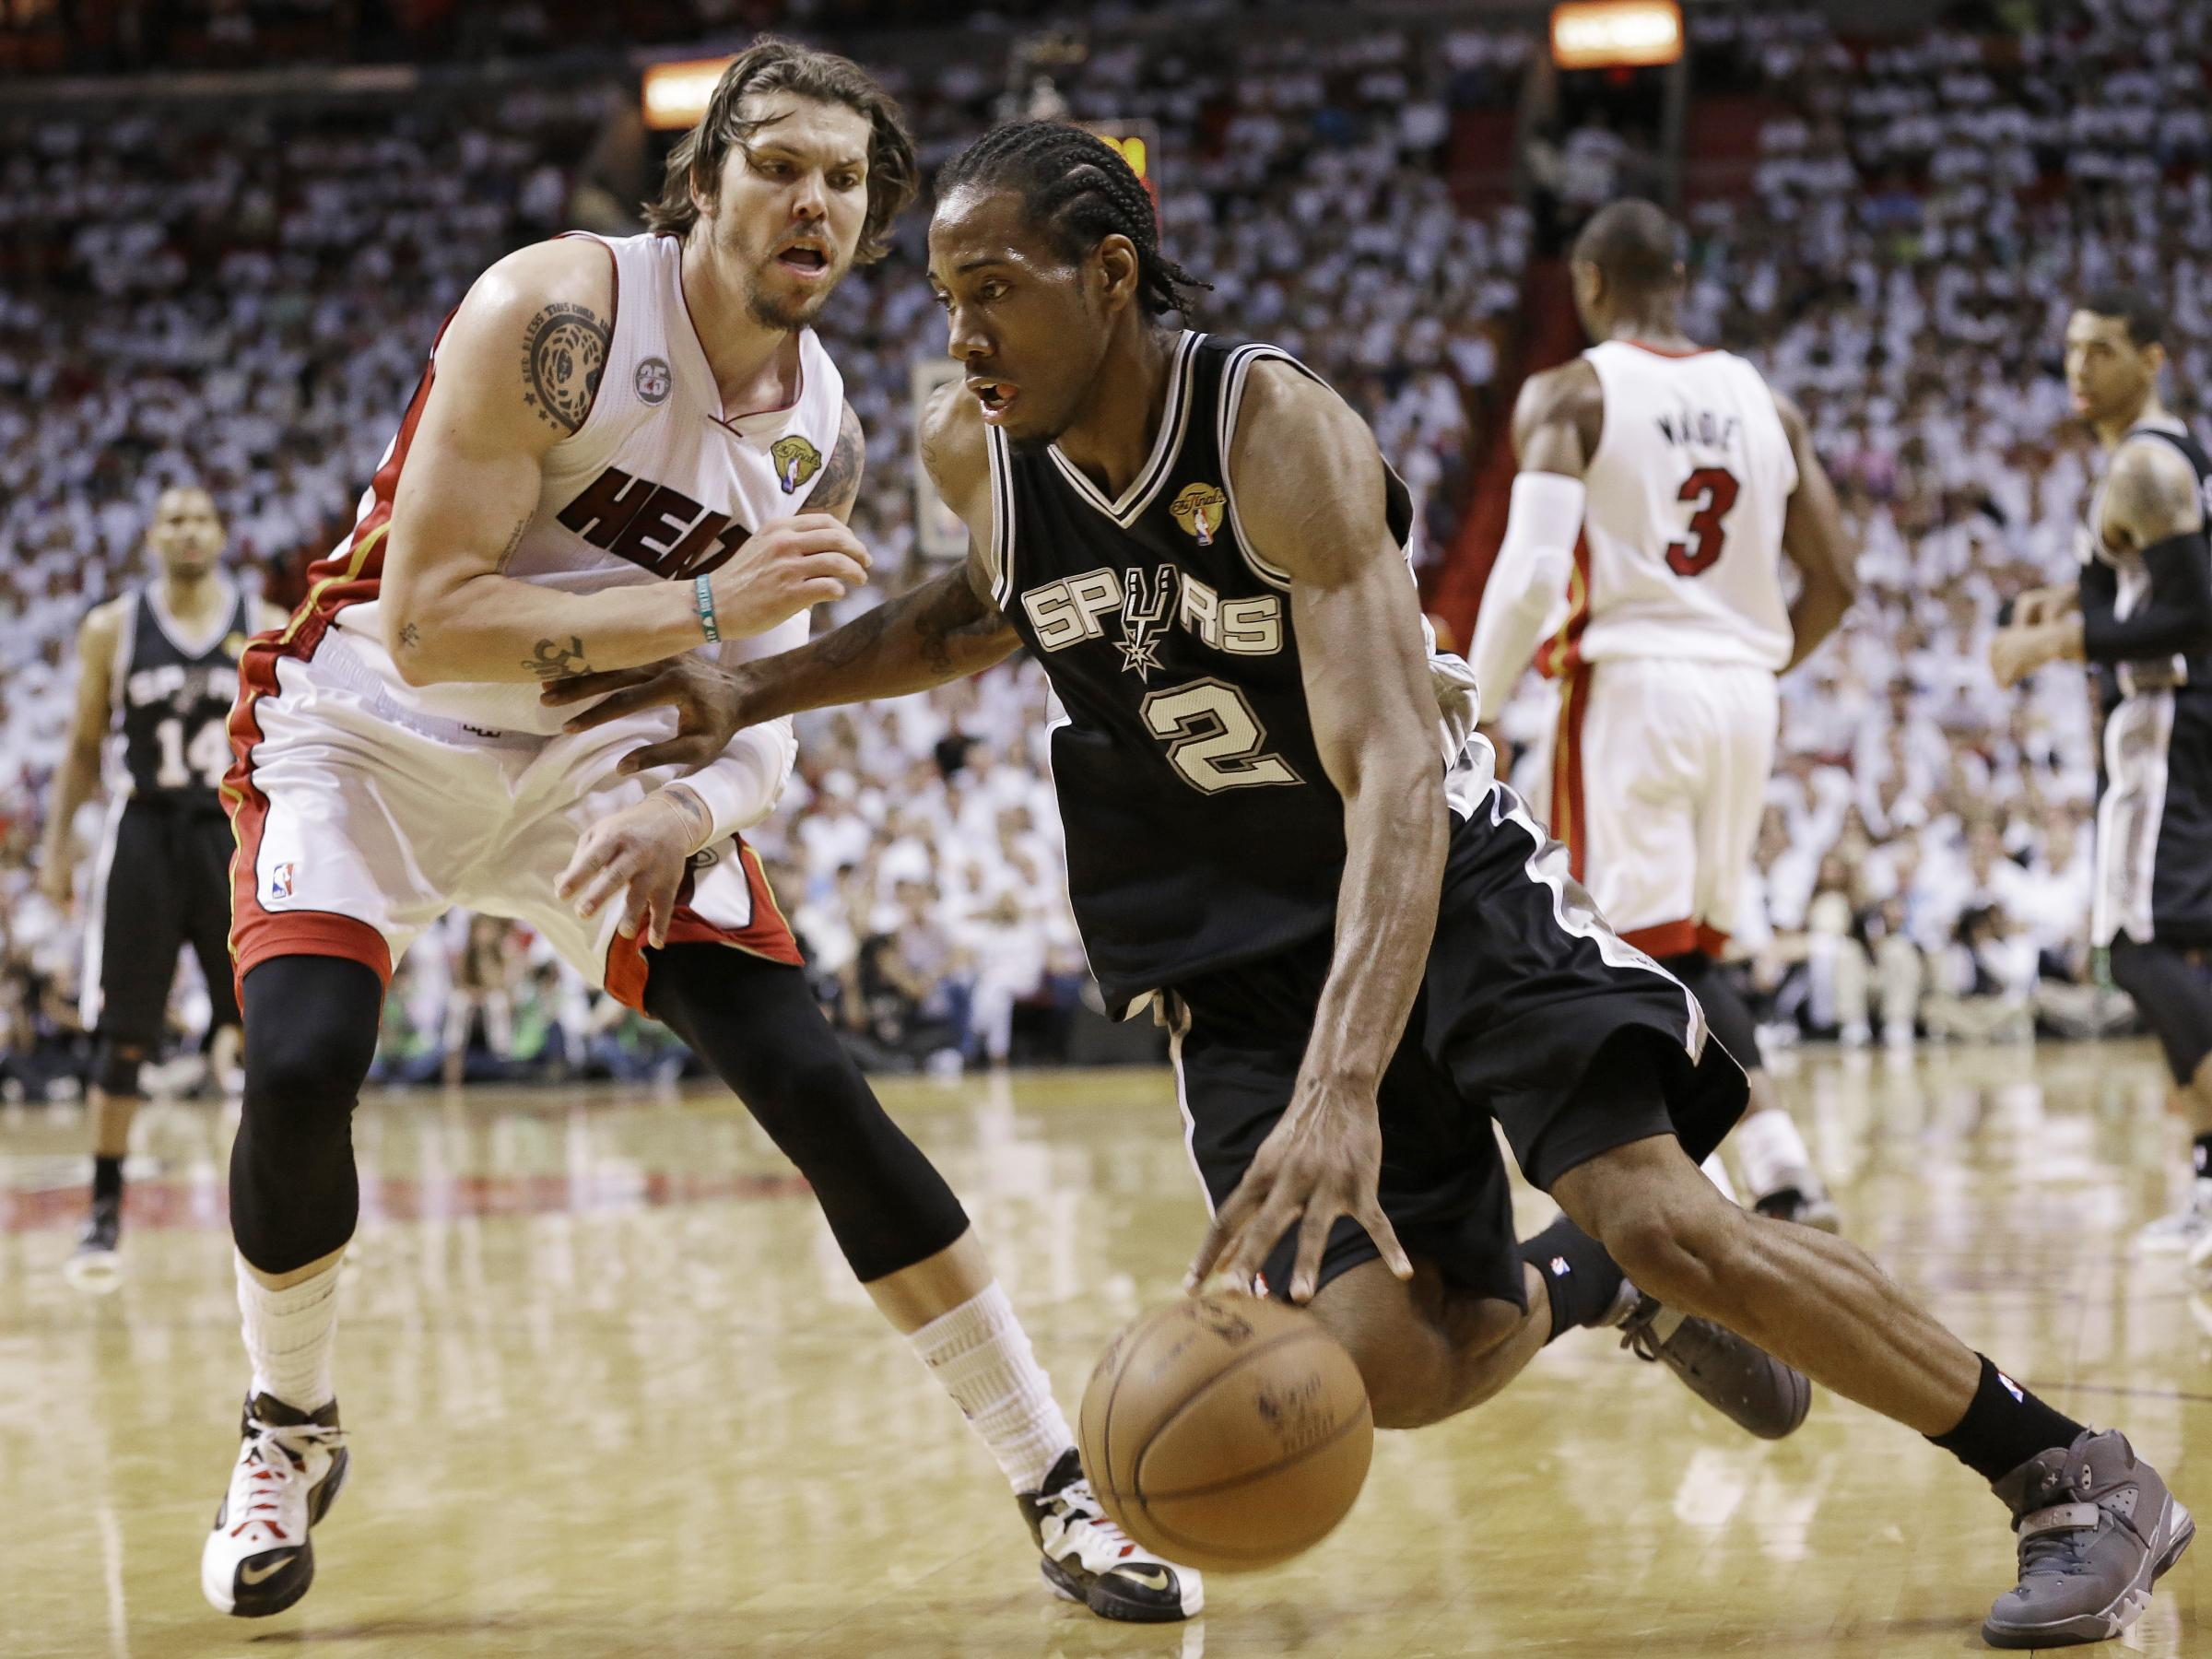 James 6 Of The Miami Heat Shoots In The Lane Against Kawhi ...